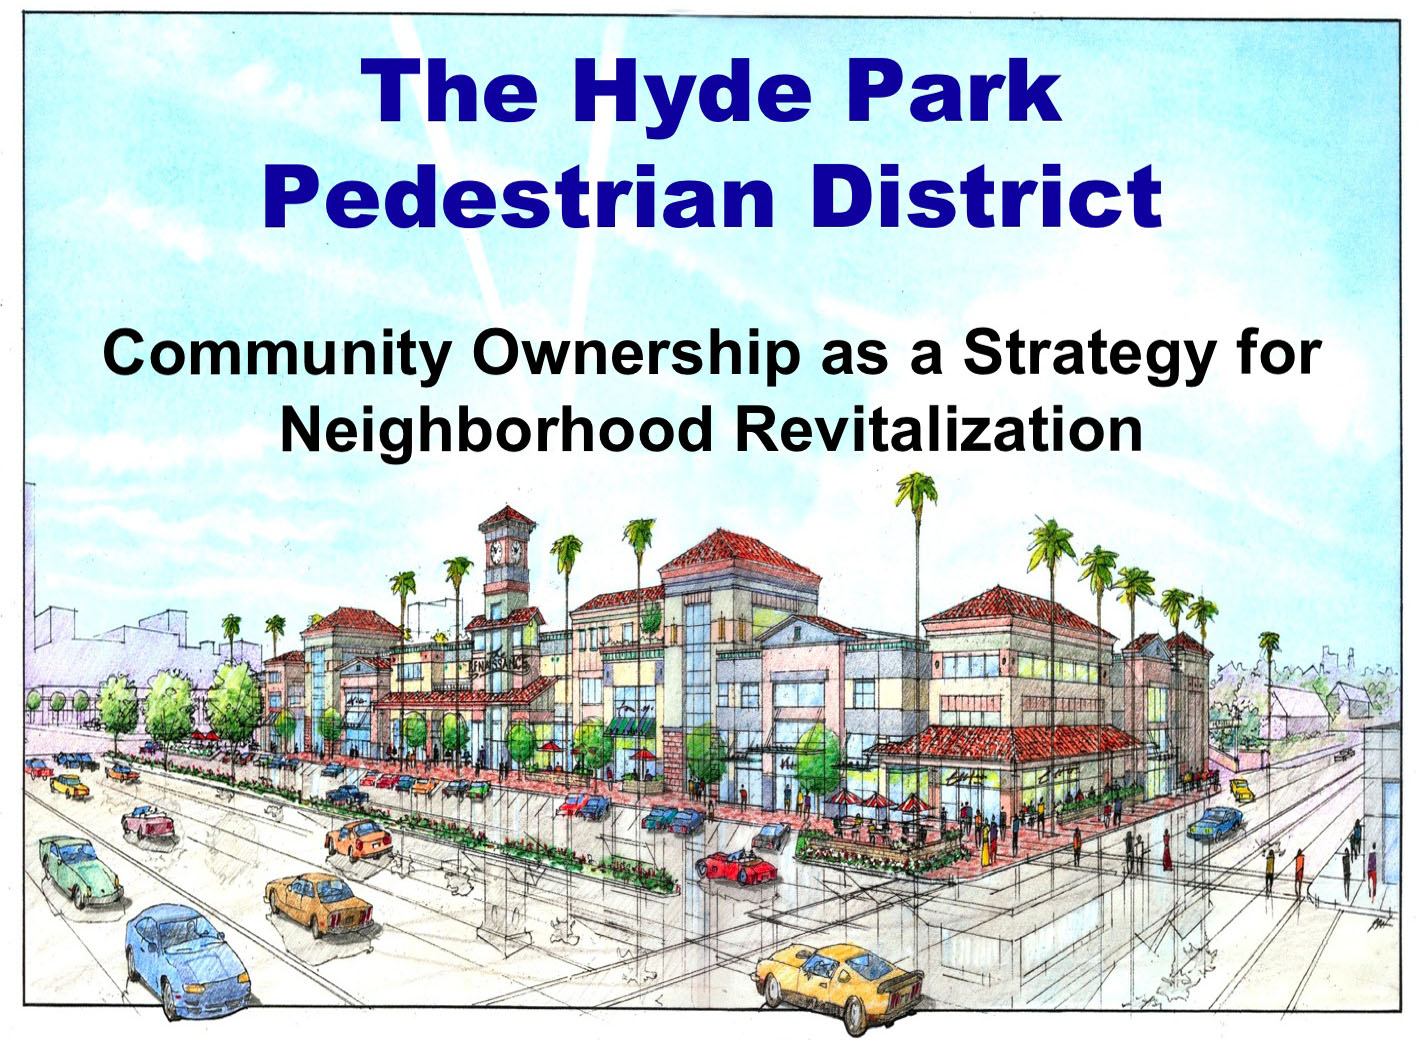 Hyde Park Pedestrian District